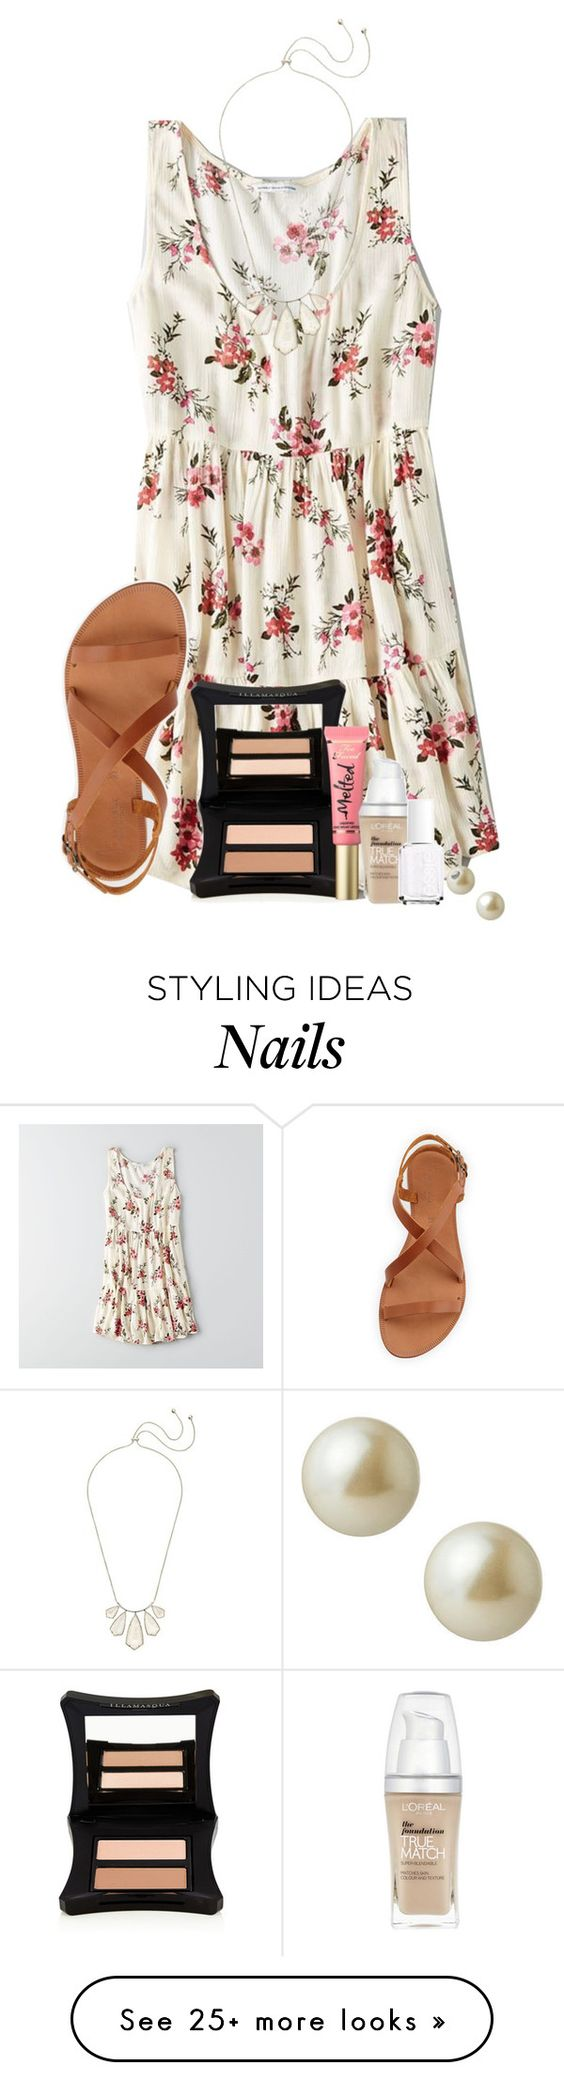 """""""CANT WAIT UNTIL THE NEW ROMANTICS VIDEO COMES OUT!!!"""" by ellababy13 on Polyvore featuring American Eagle Outfitters, Joie, Illamasqua, Too Faced Cosmetics, L'Oréal Paris, Essie, Carolee and Kendra Scott"""